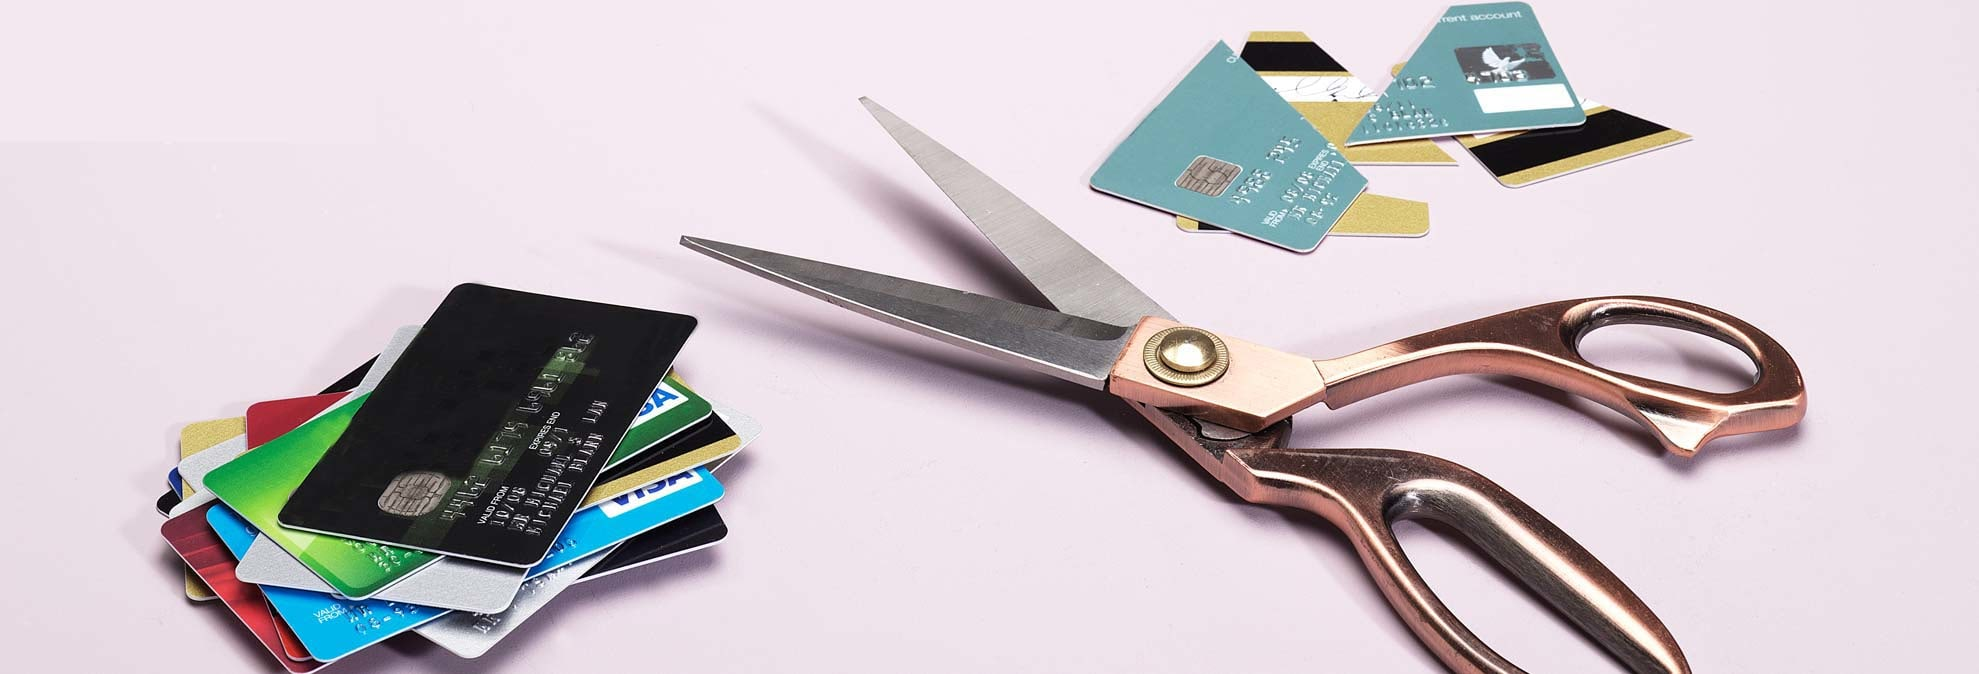 When Canceling A Credit Card, Use Caution